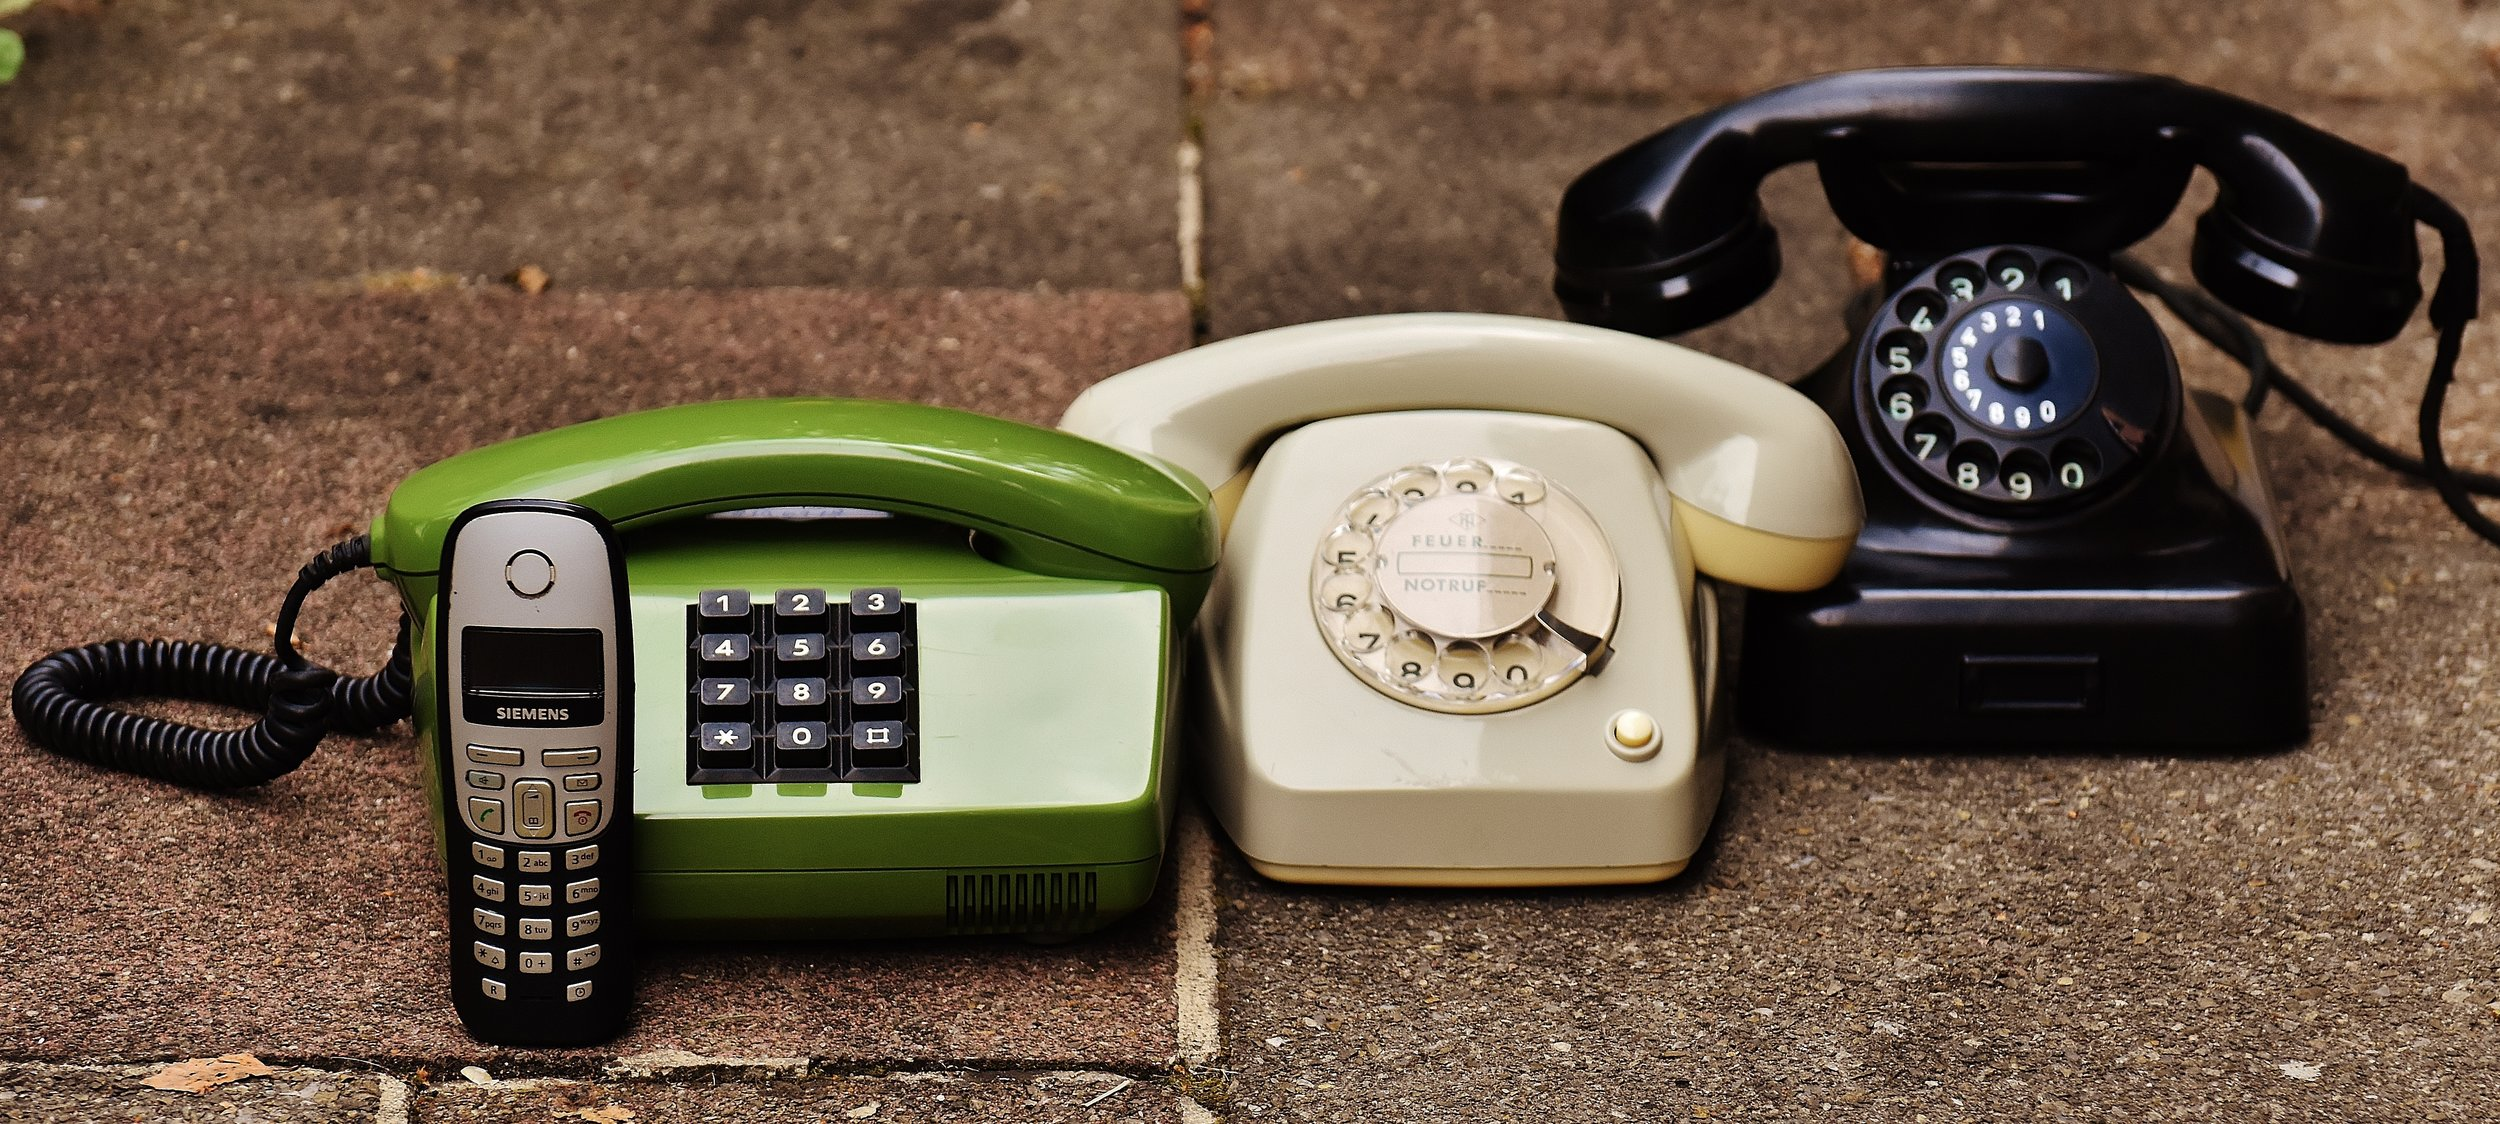 """This is what telephones looked like before they were referred to as """"landlines""""."""